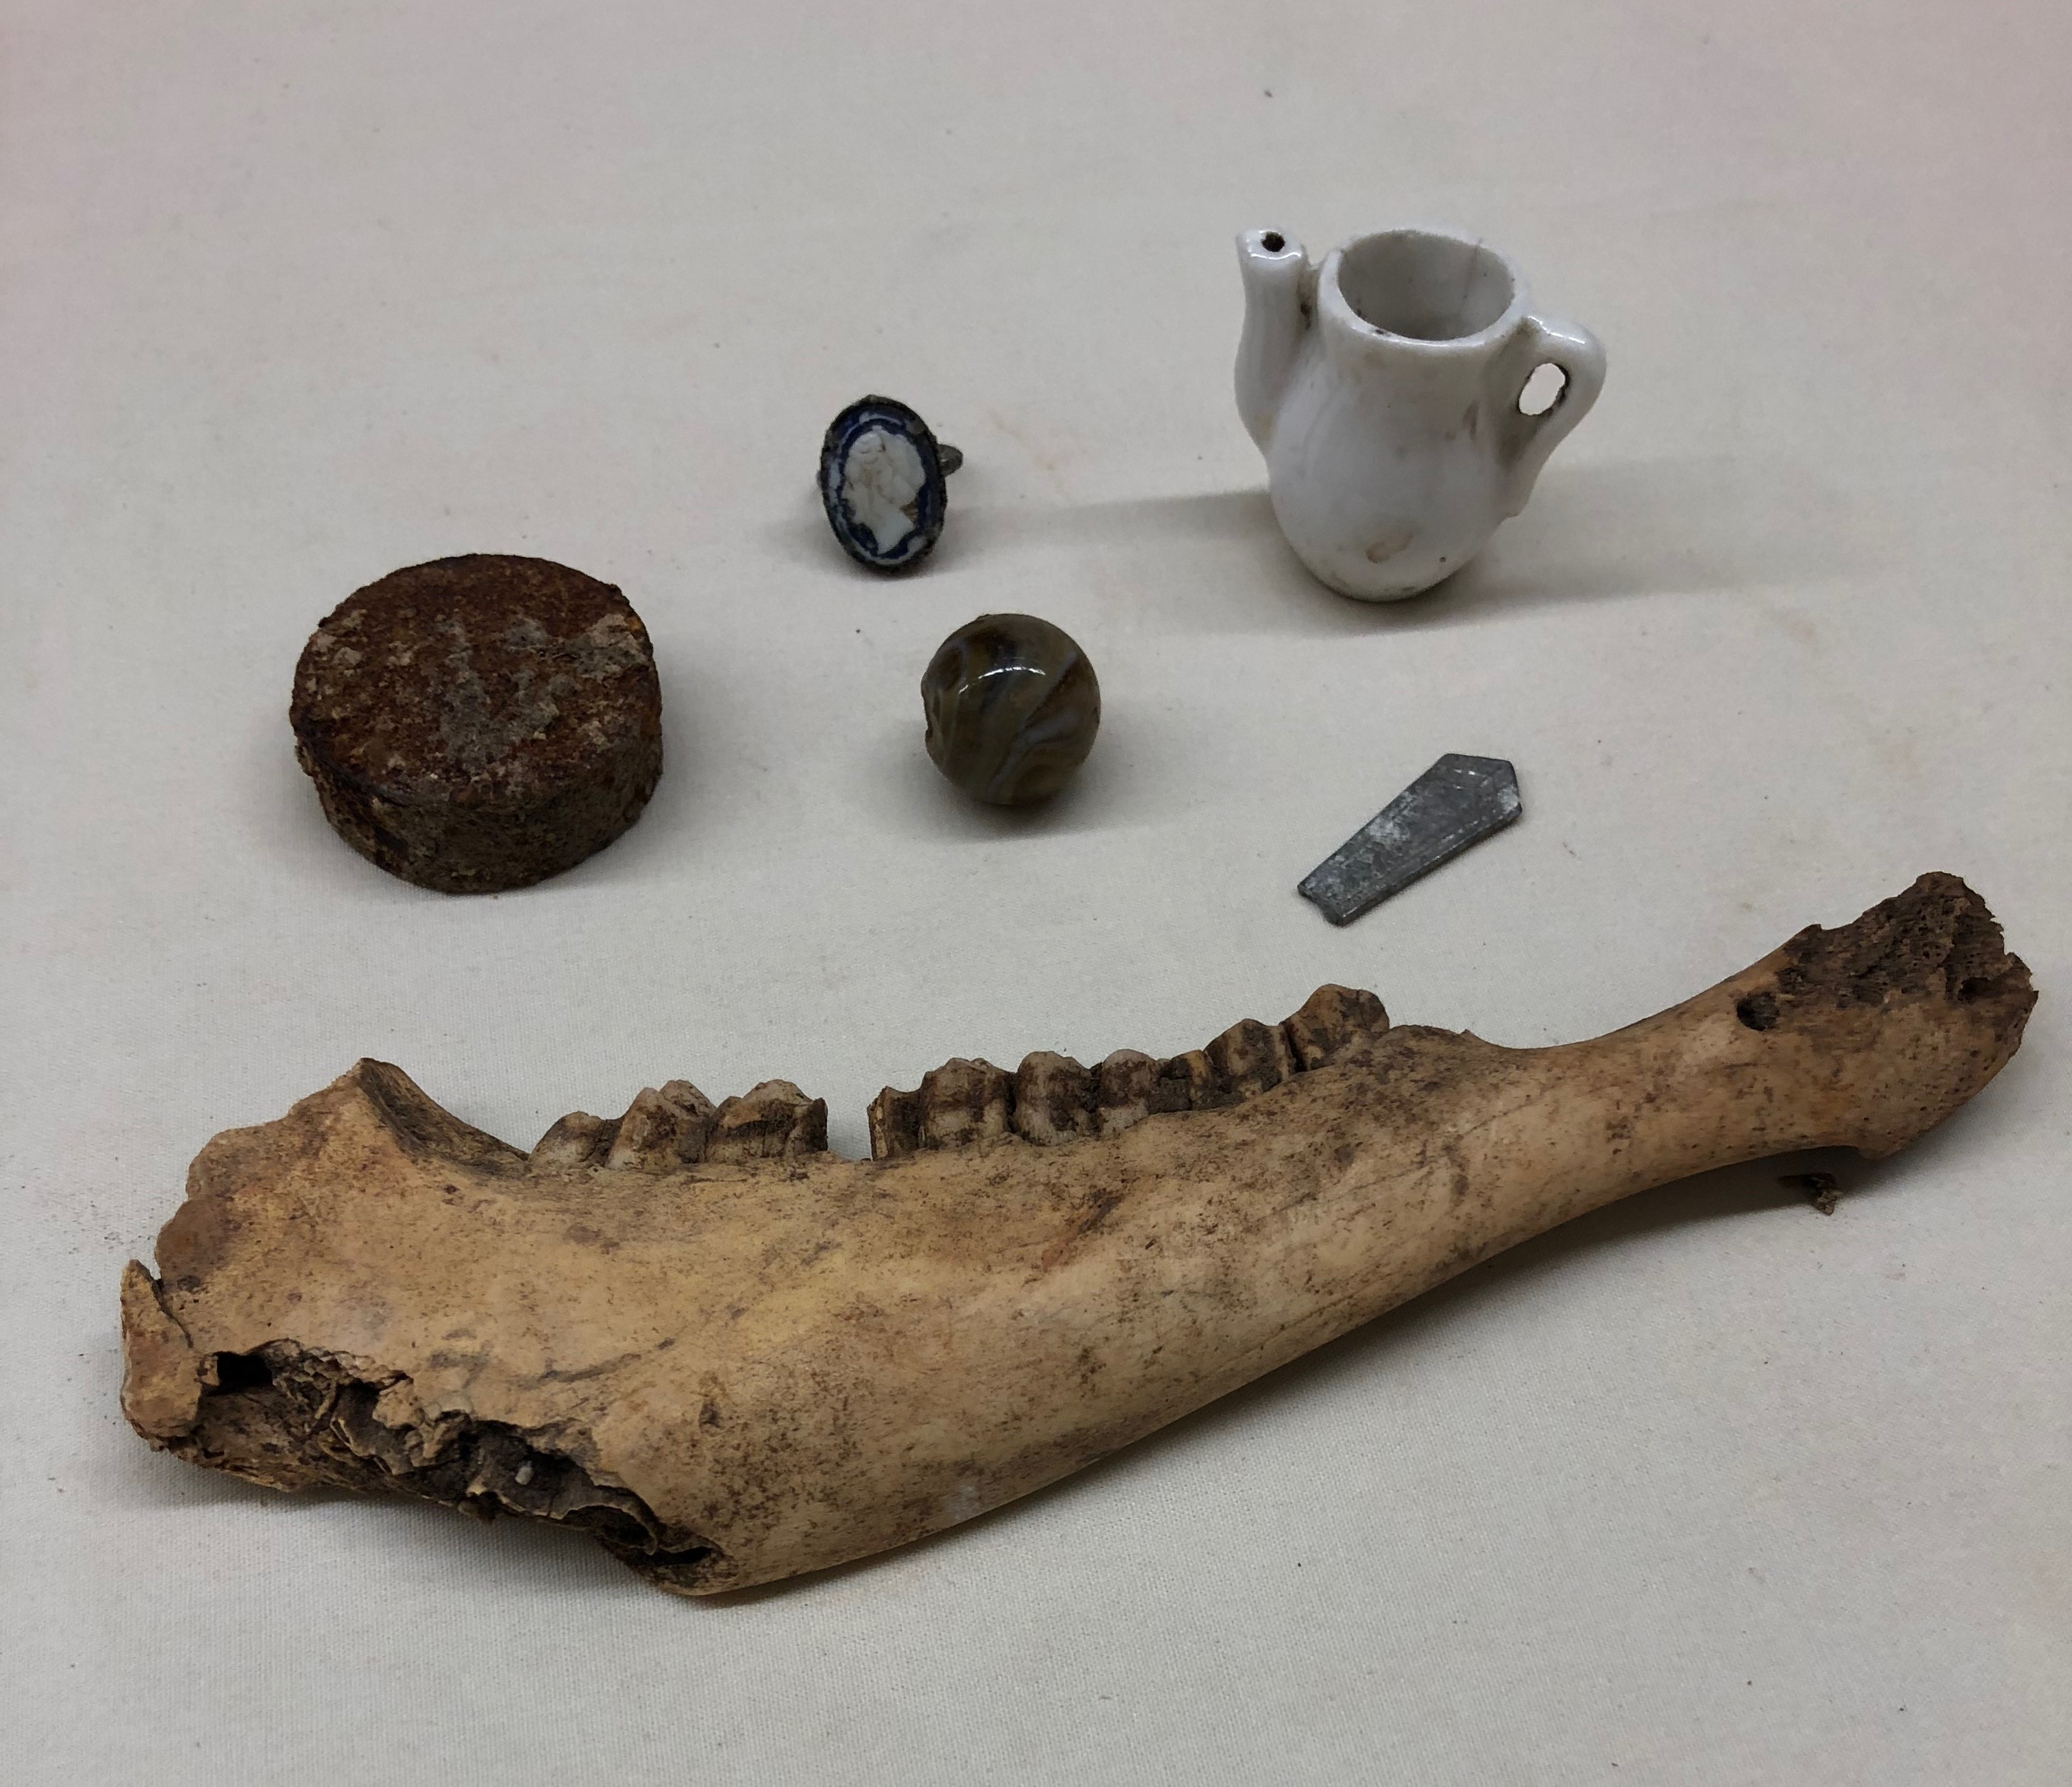 Archaeological items including jaw bone, ceramic pitcher, glass marble and more